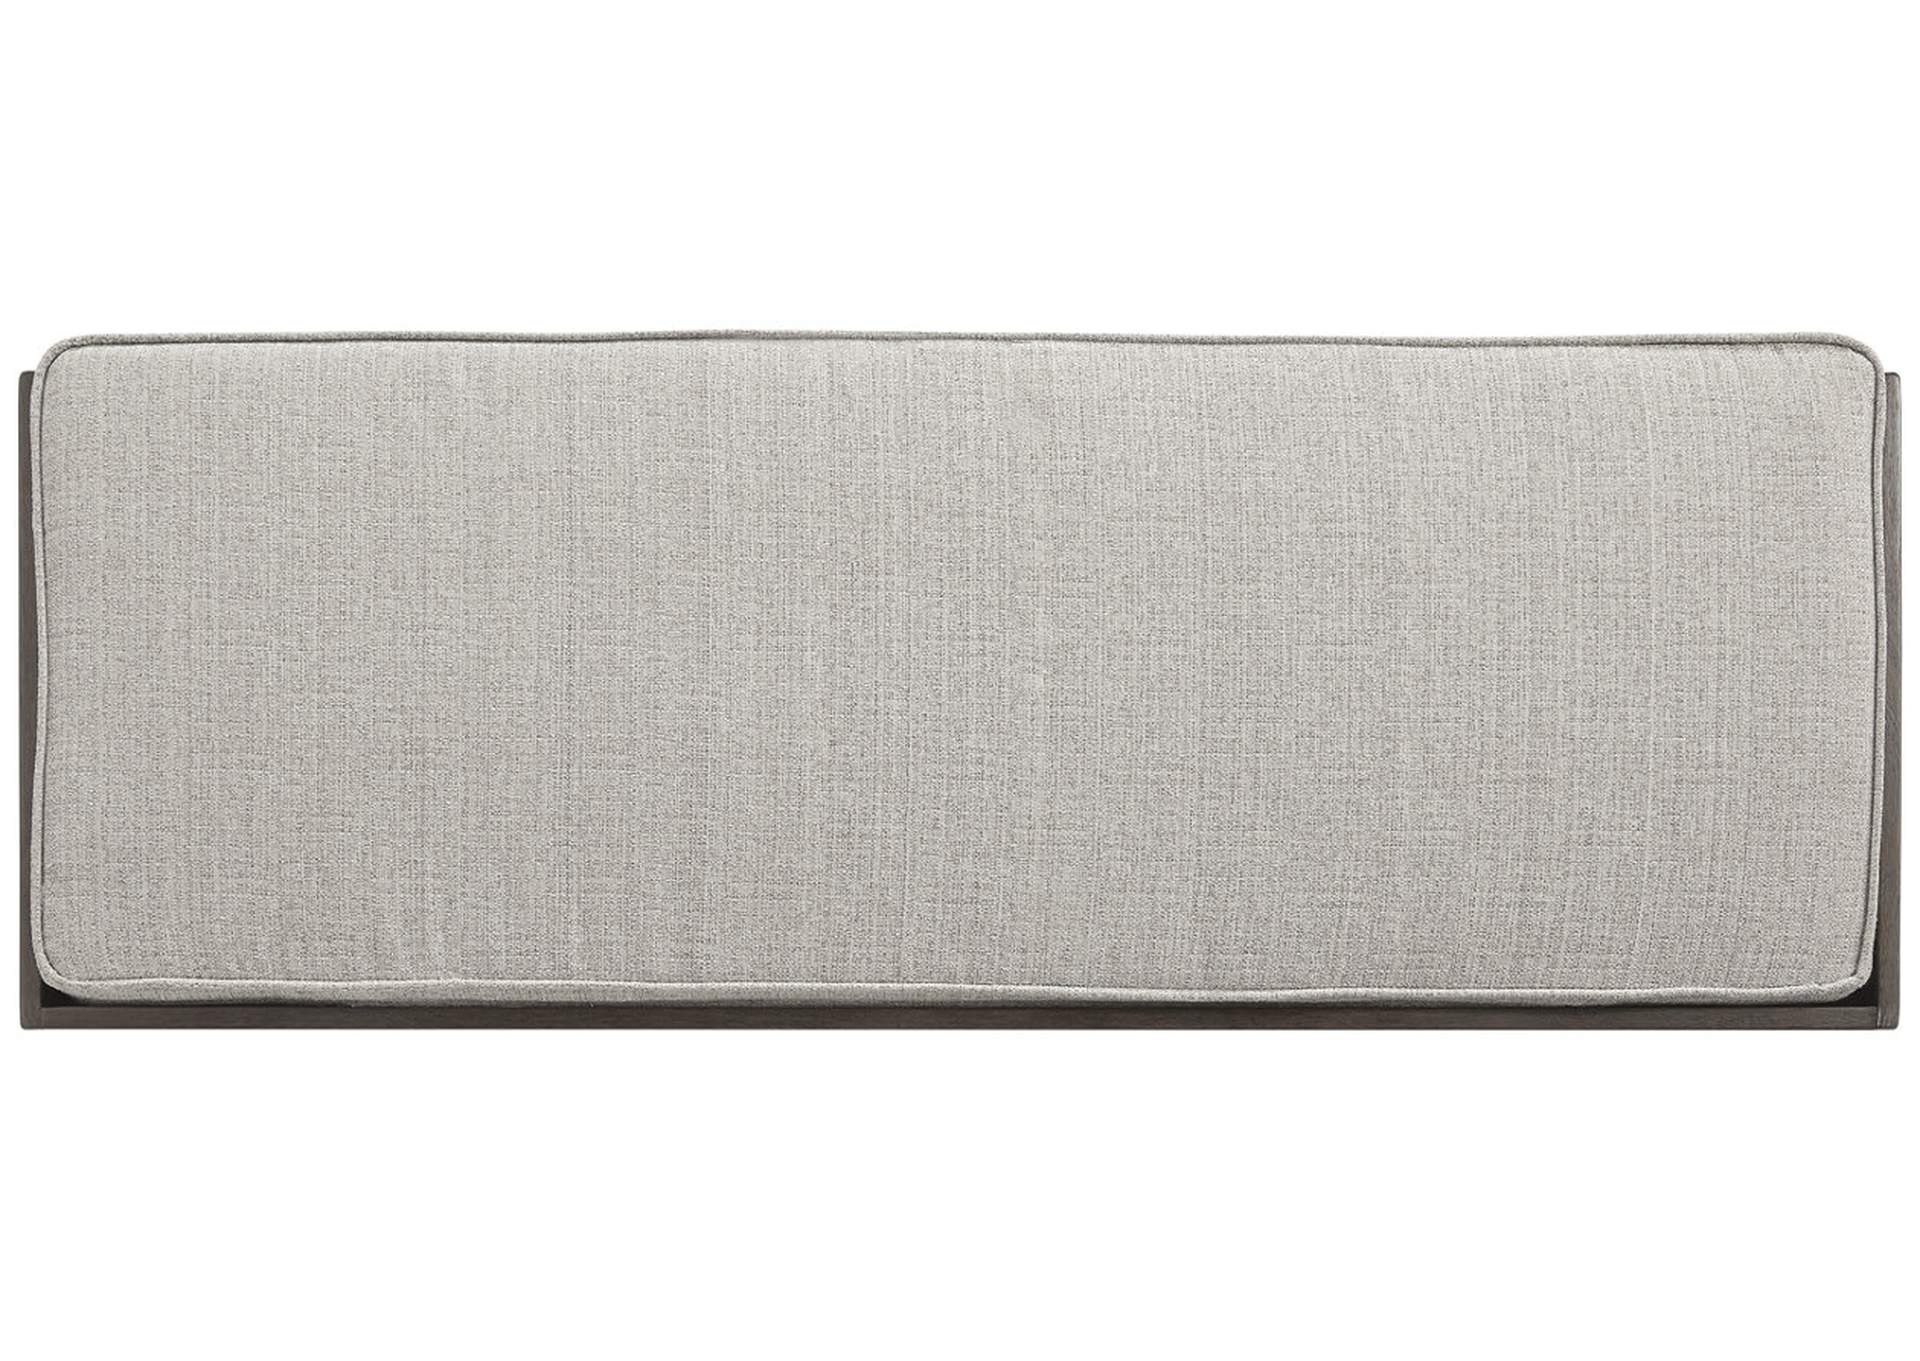 Chetfield Storage Bench,Signature Design By Ashley